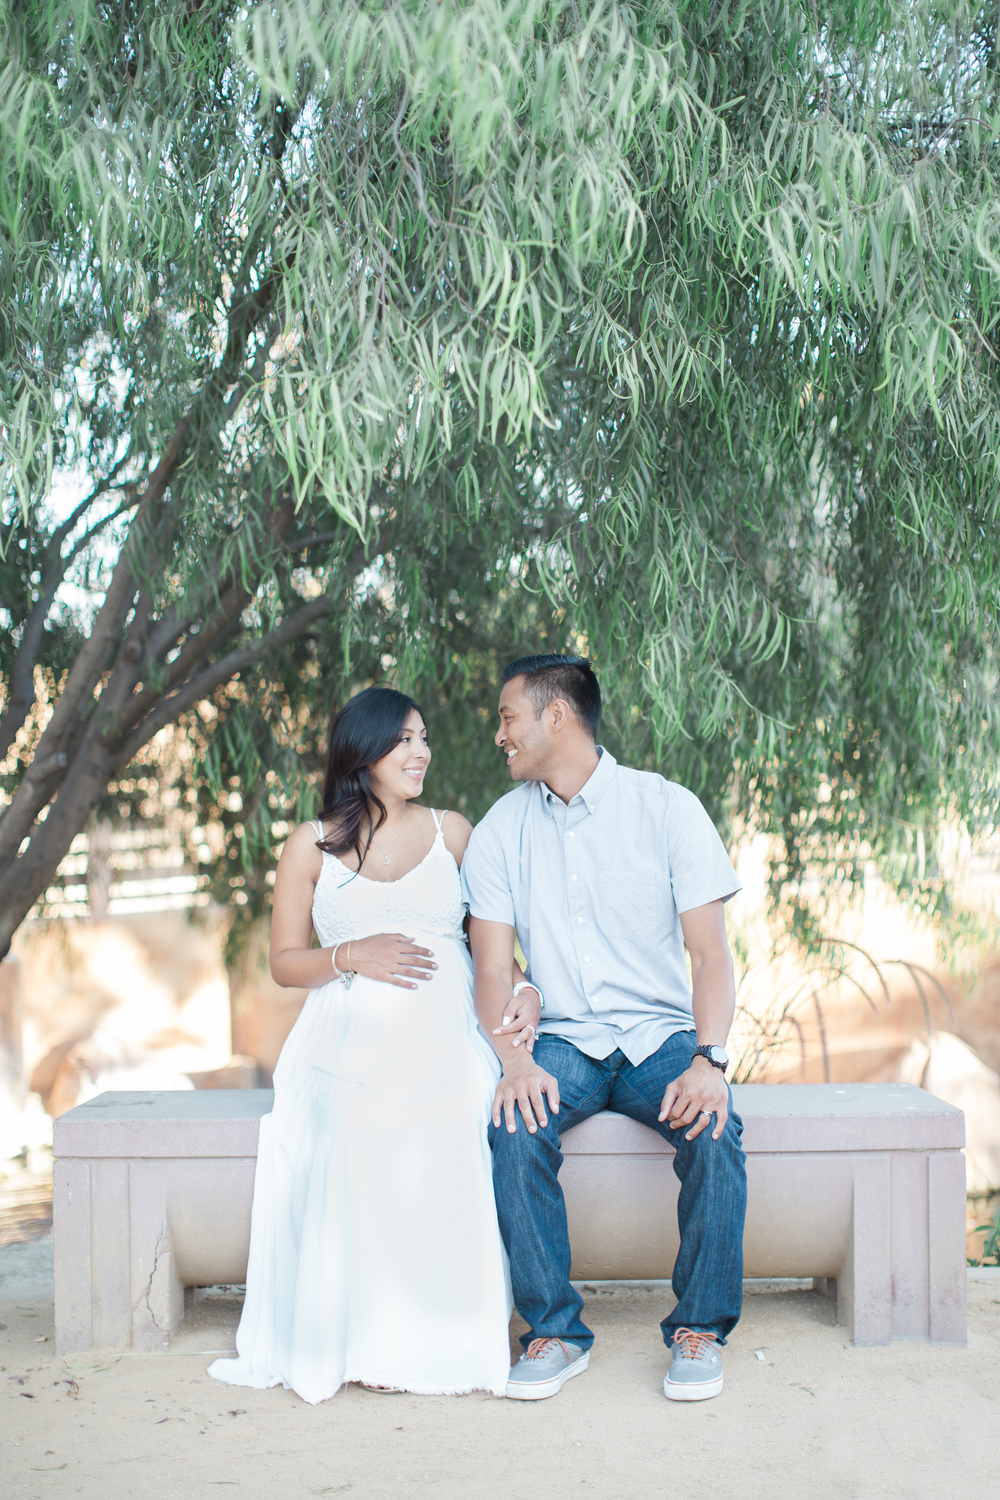 Marcella_Maternity_Cerritos_BrandonJFerlin_Photography-48.jpg